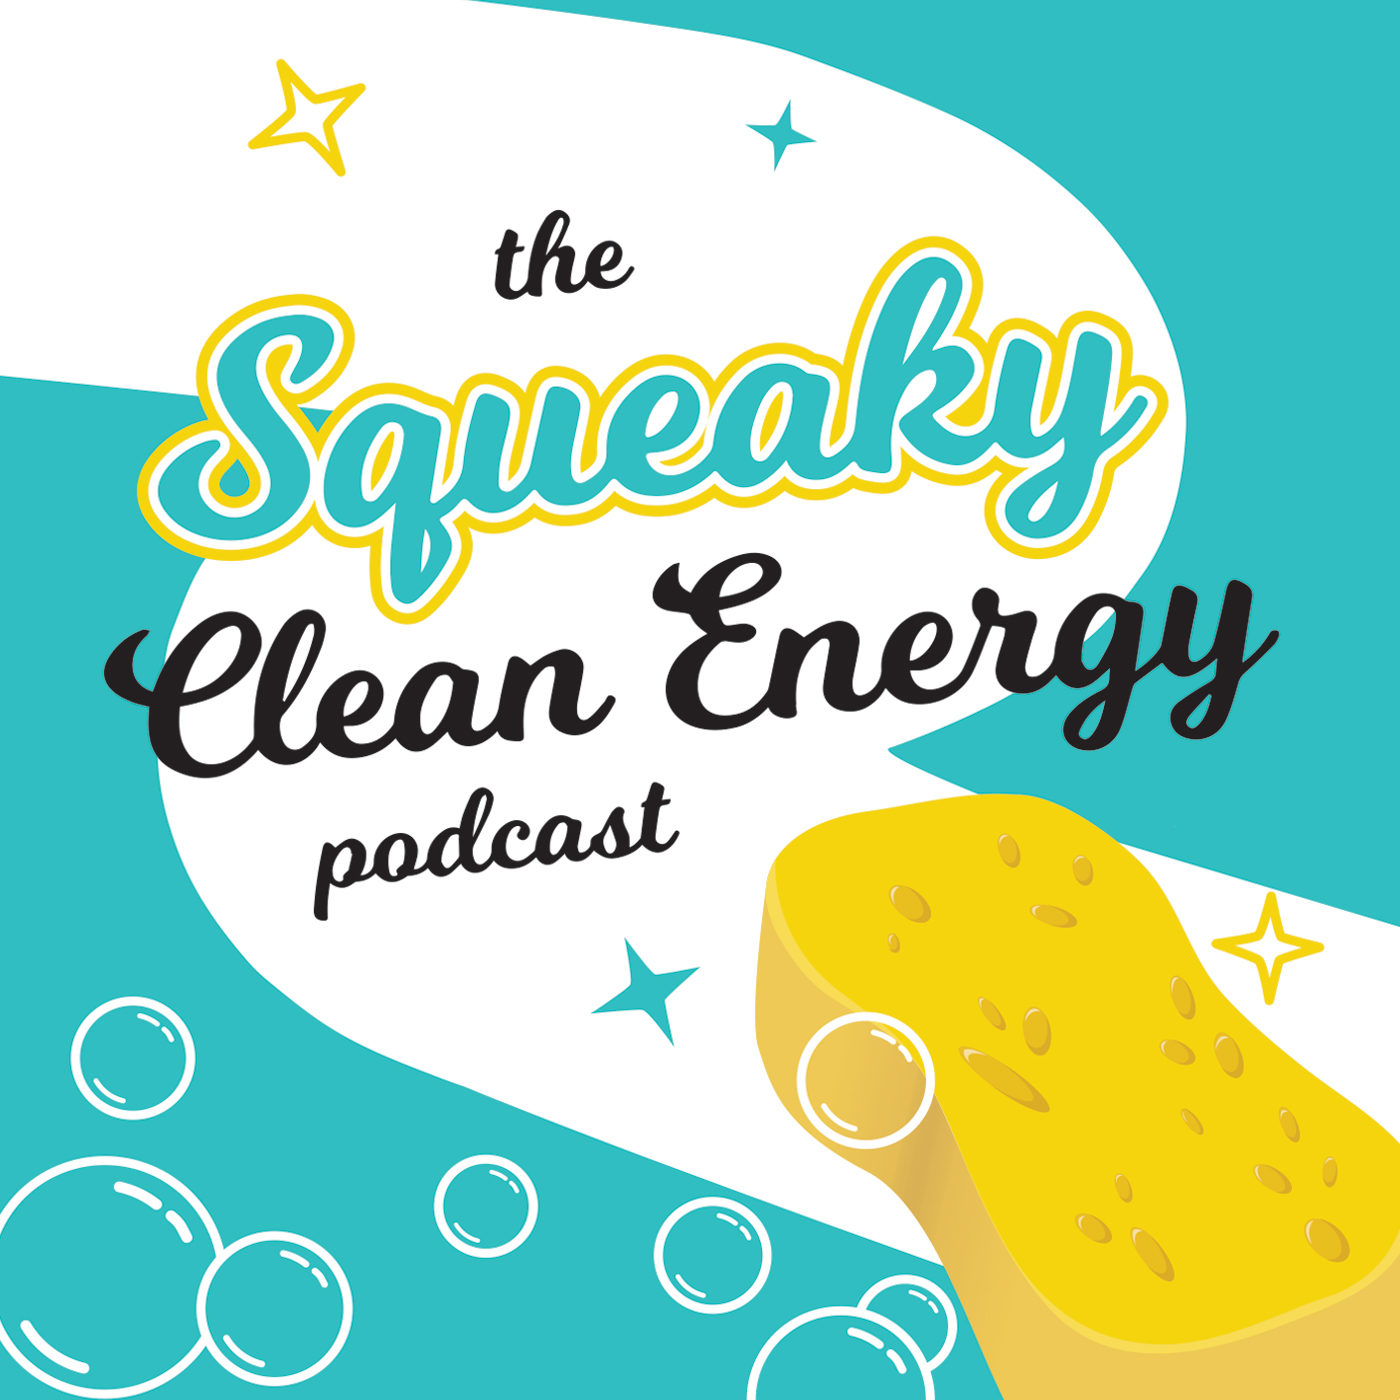 Squeaky_Clean_Energy_Podcast_logov2